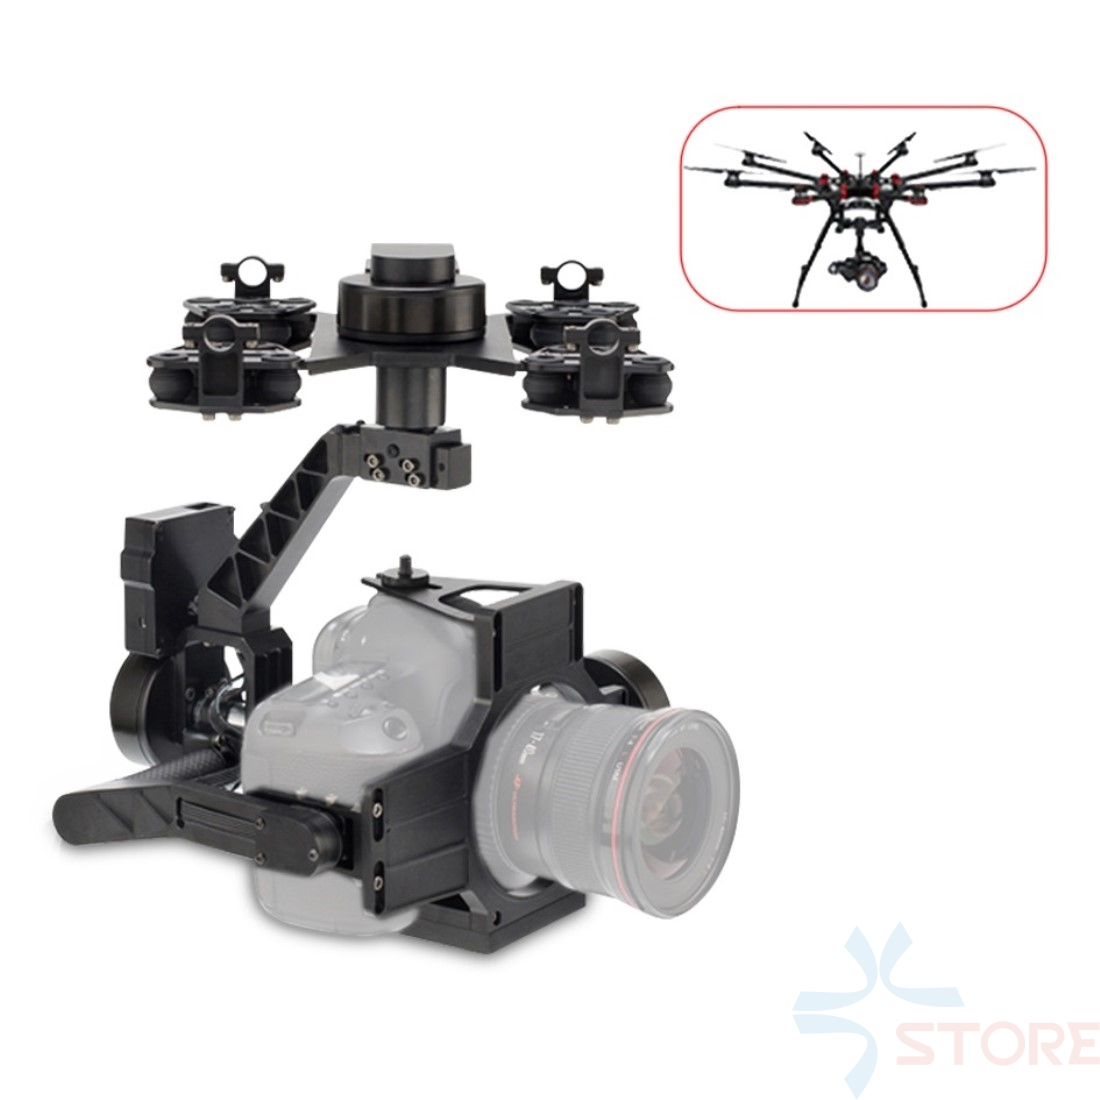 Aerial Photography 3-Axis UAV Gimbal Camera Mount for Video Film DSLR Canon 5D3 Nikon D800 GH4 Sony A7 / NEX5 A5100 6000 A7S цена